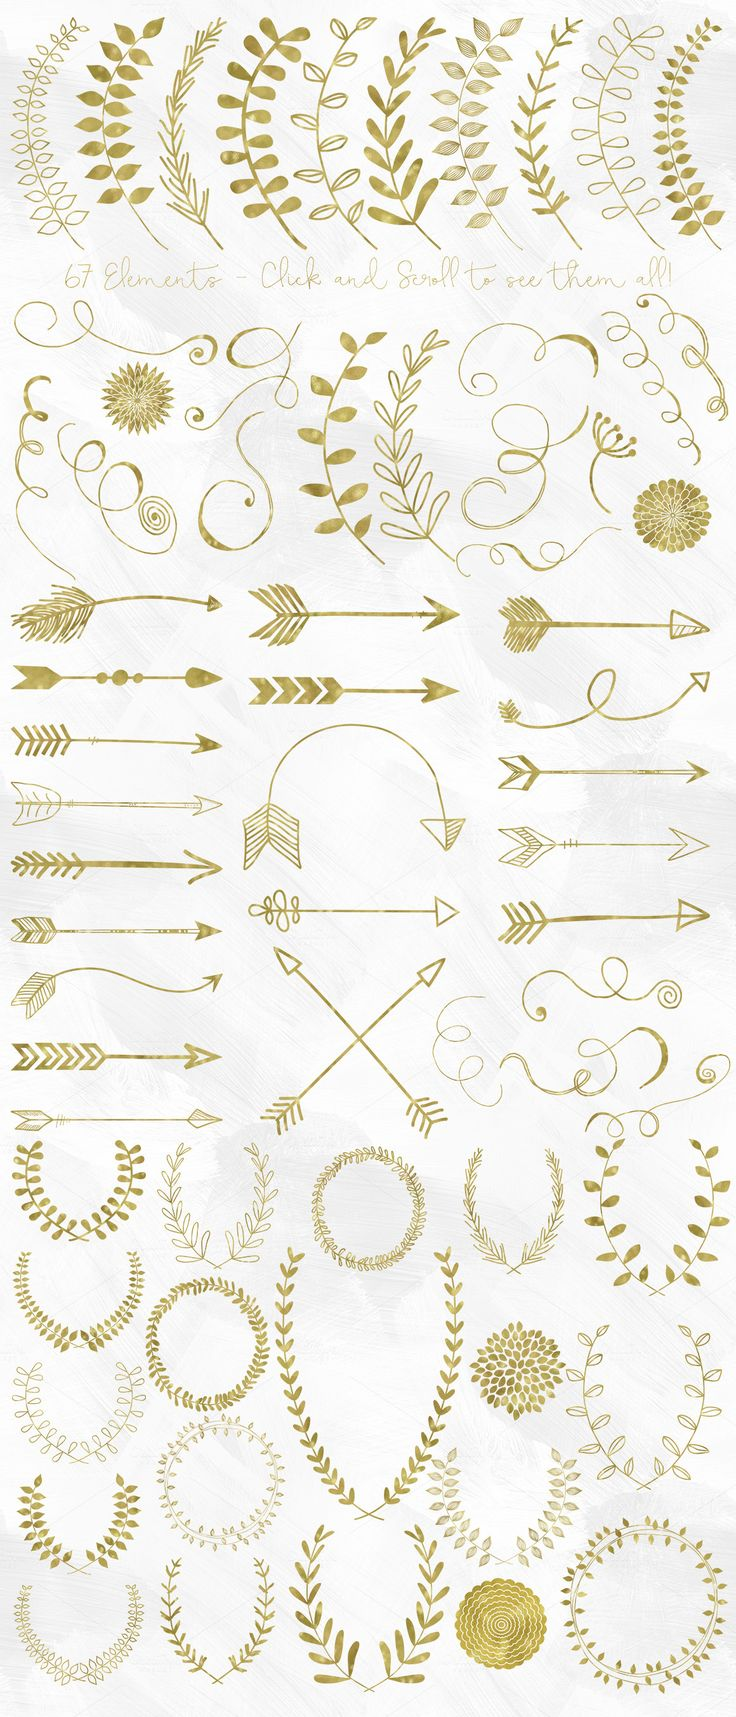 This is a huge collection of high quality gold foil arrows, laurels, wreaths and flourishes. Use them to adorn your invitations, art prints, products and much more! --- WHAT YOU GET: - 20